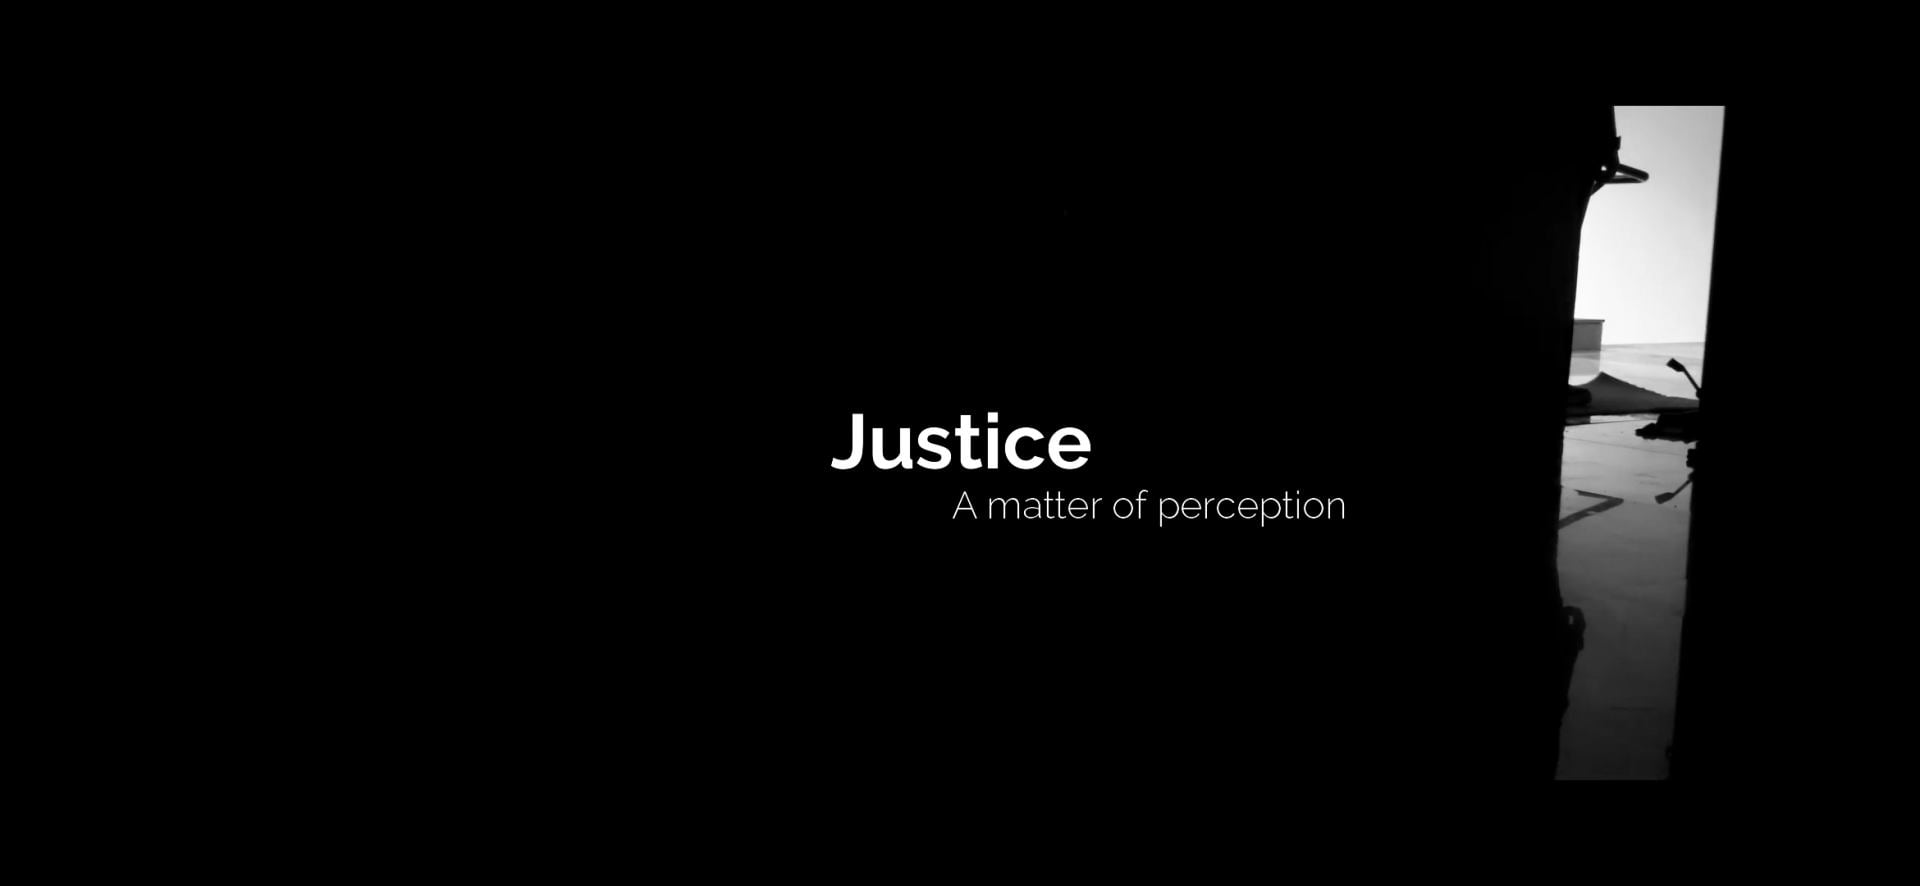 justice_ A matter of perception